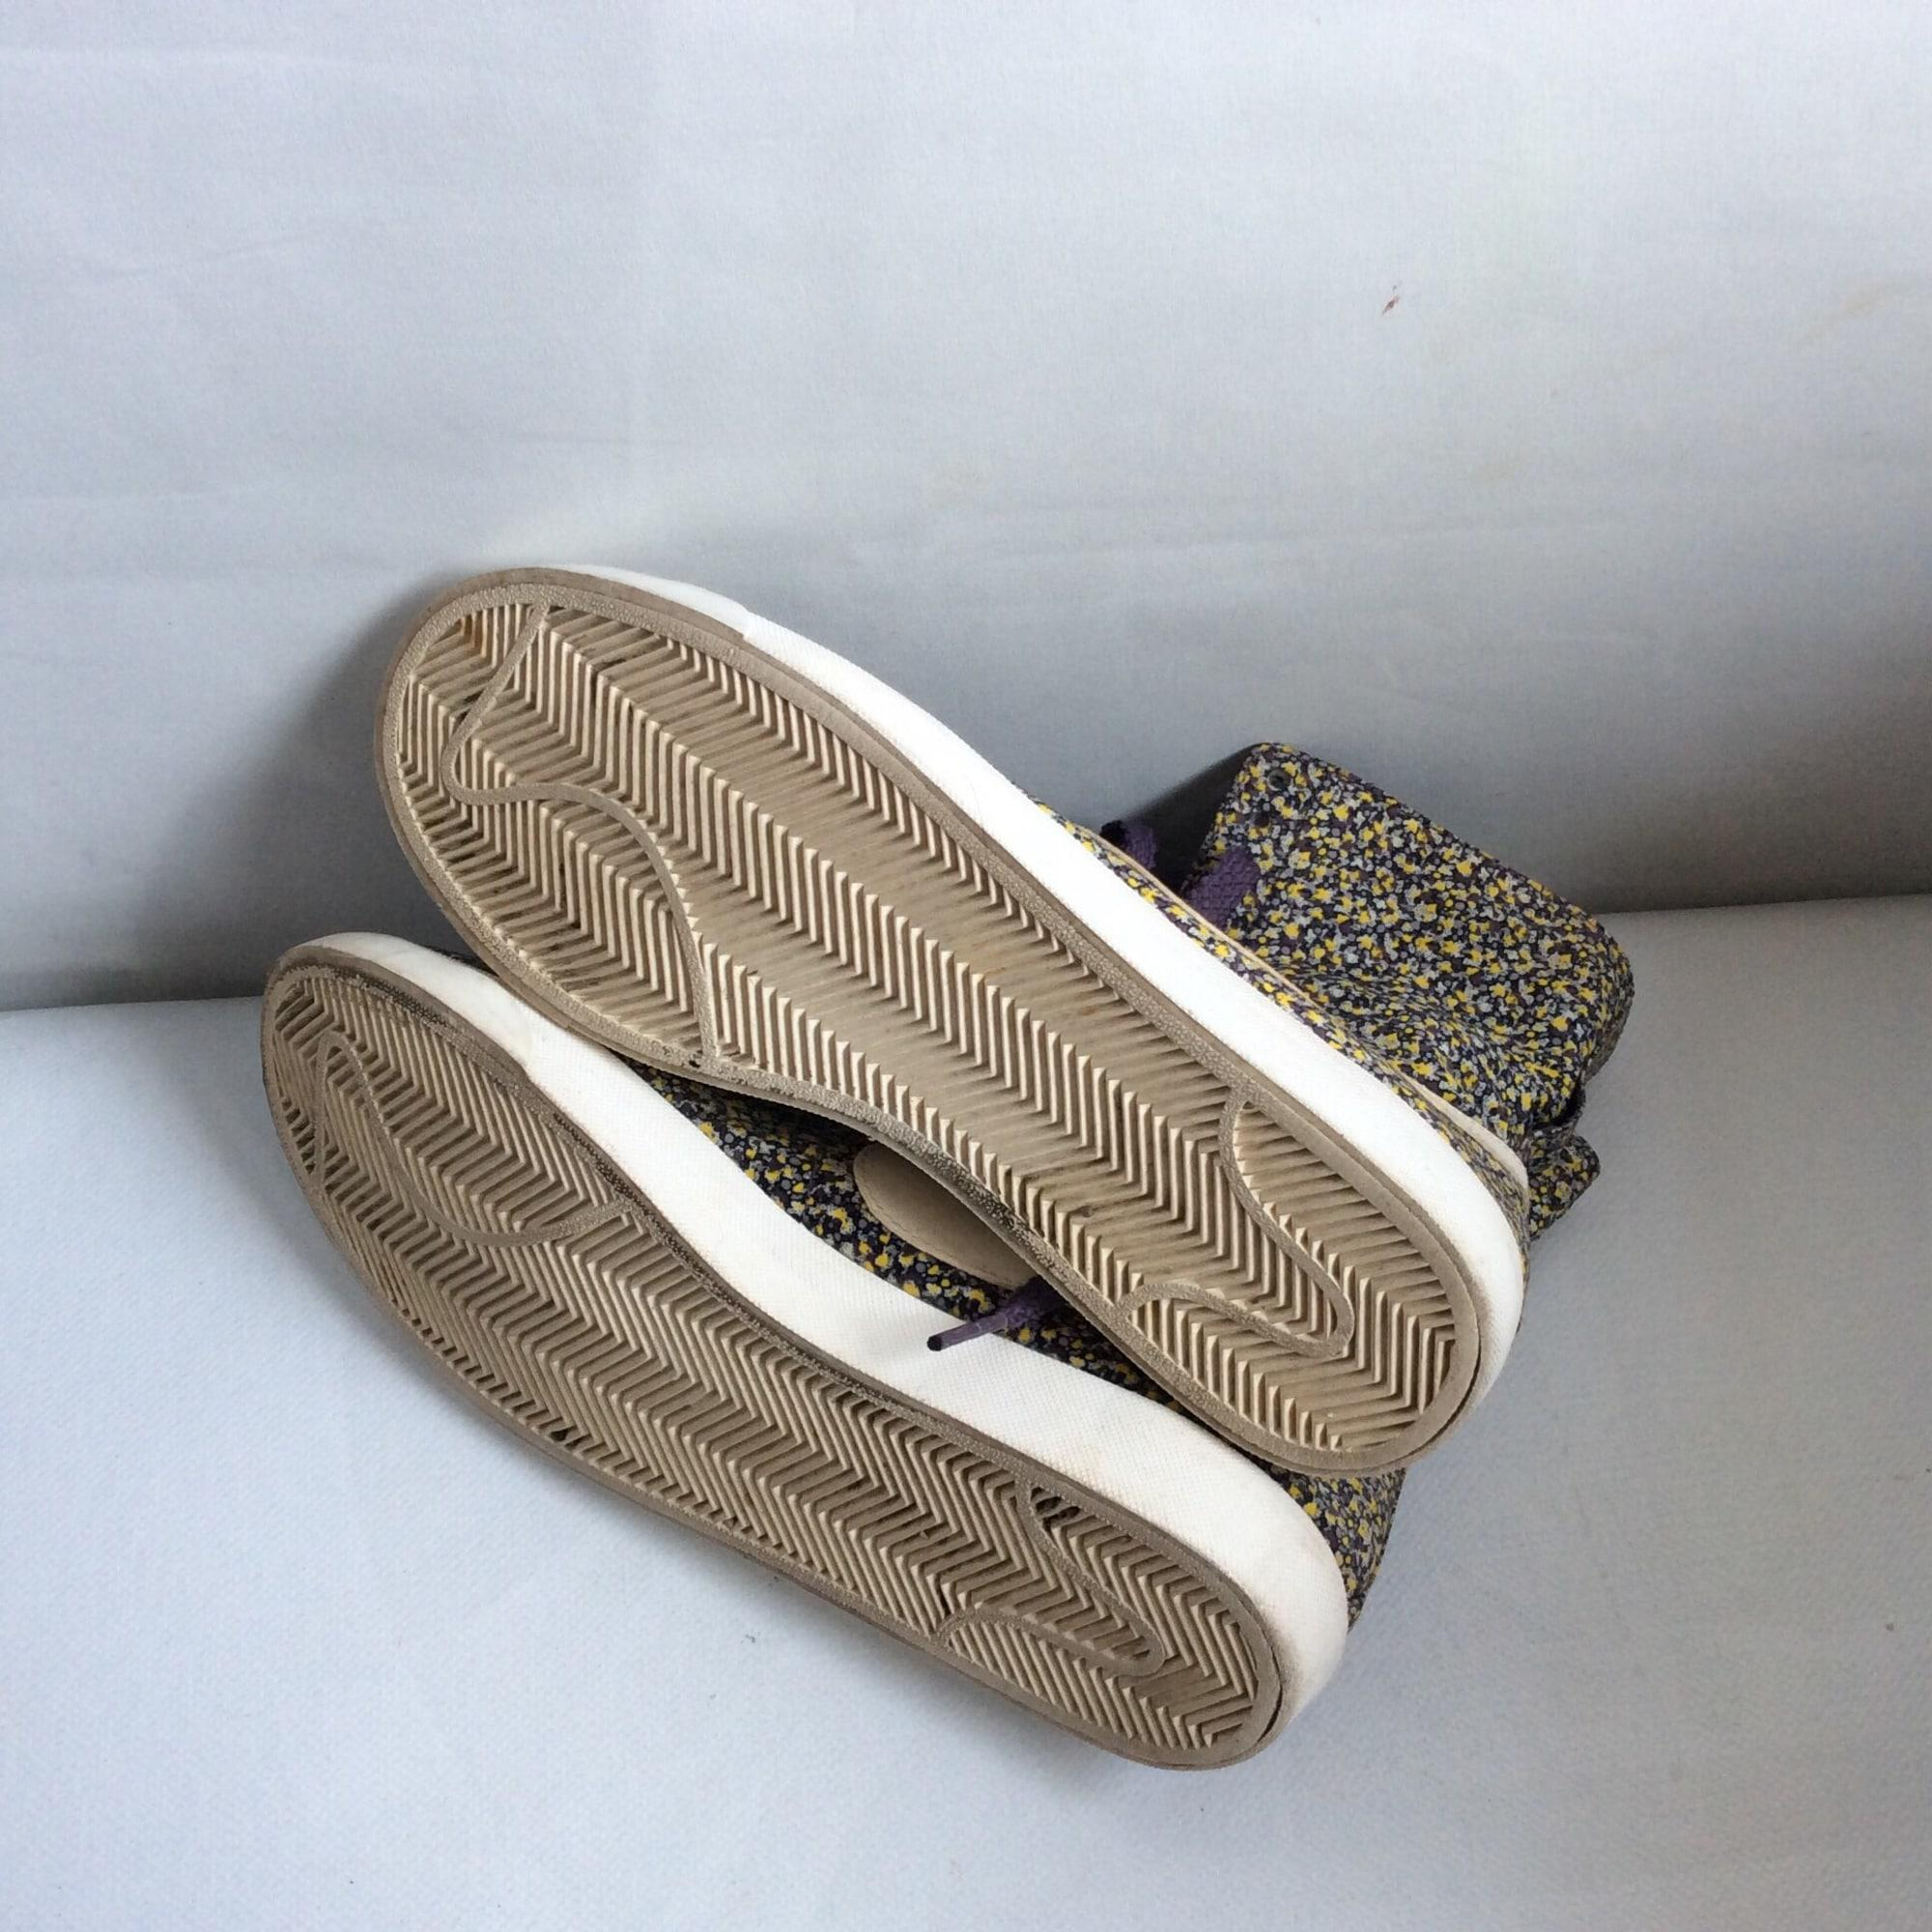 Baskets coton multicolore Nike IwRZ